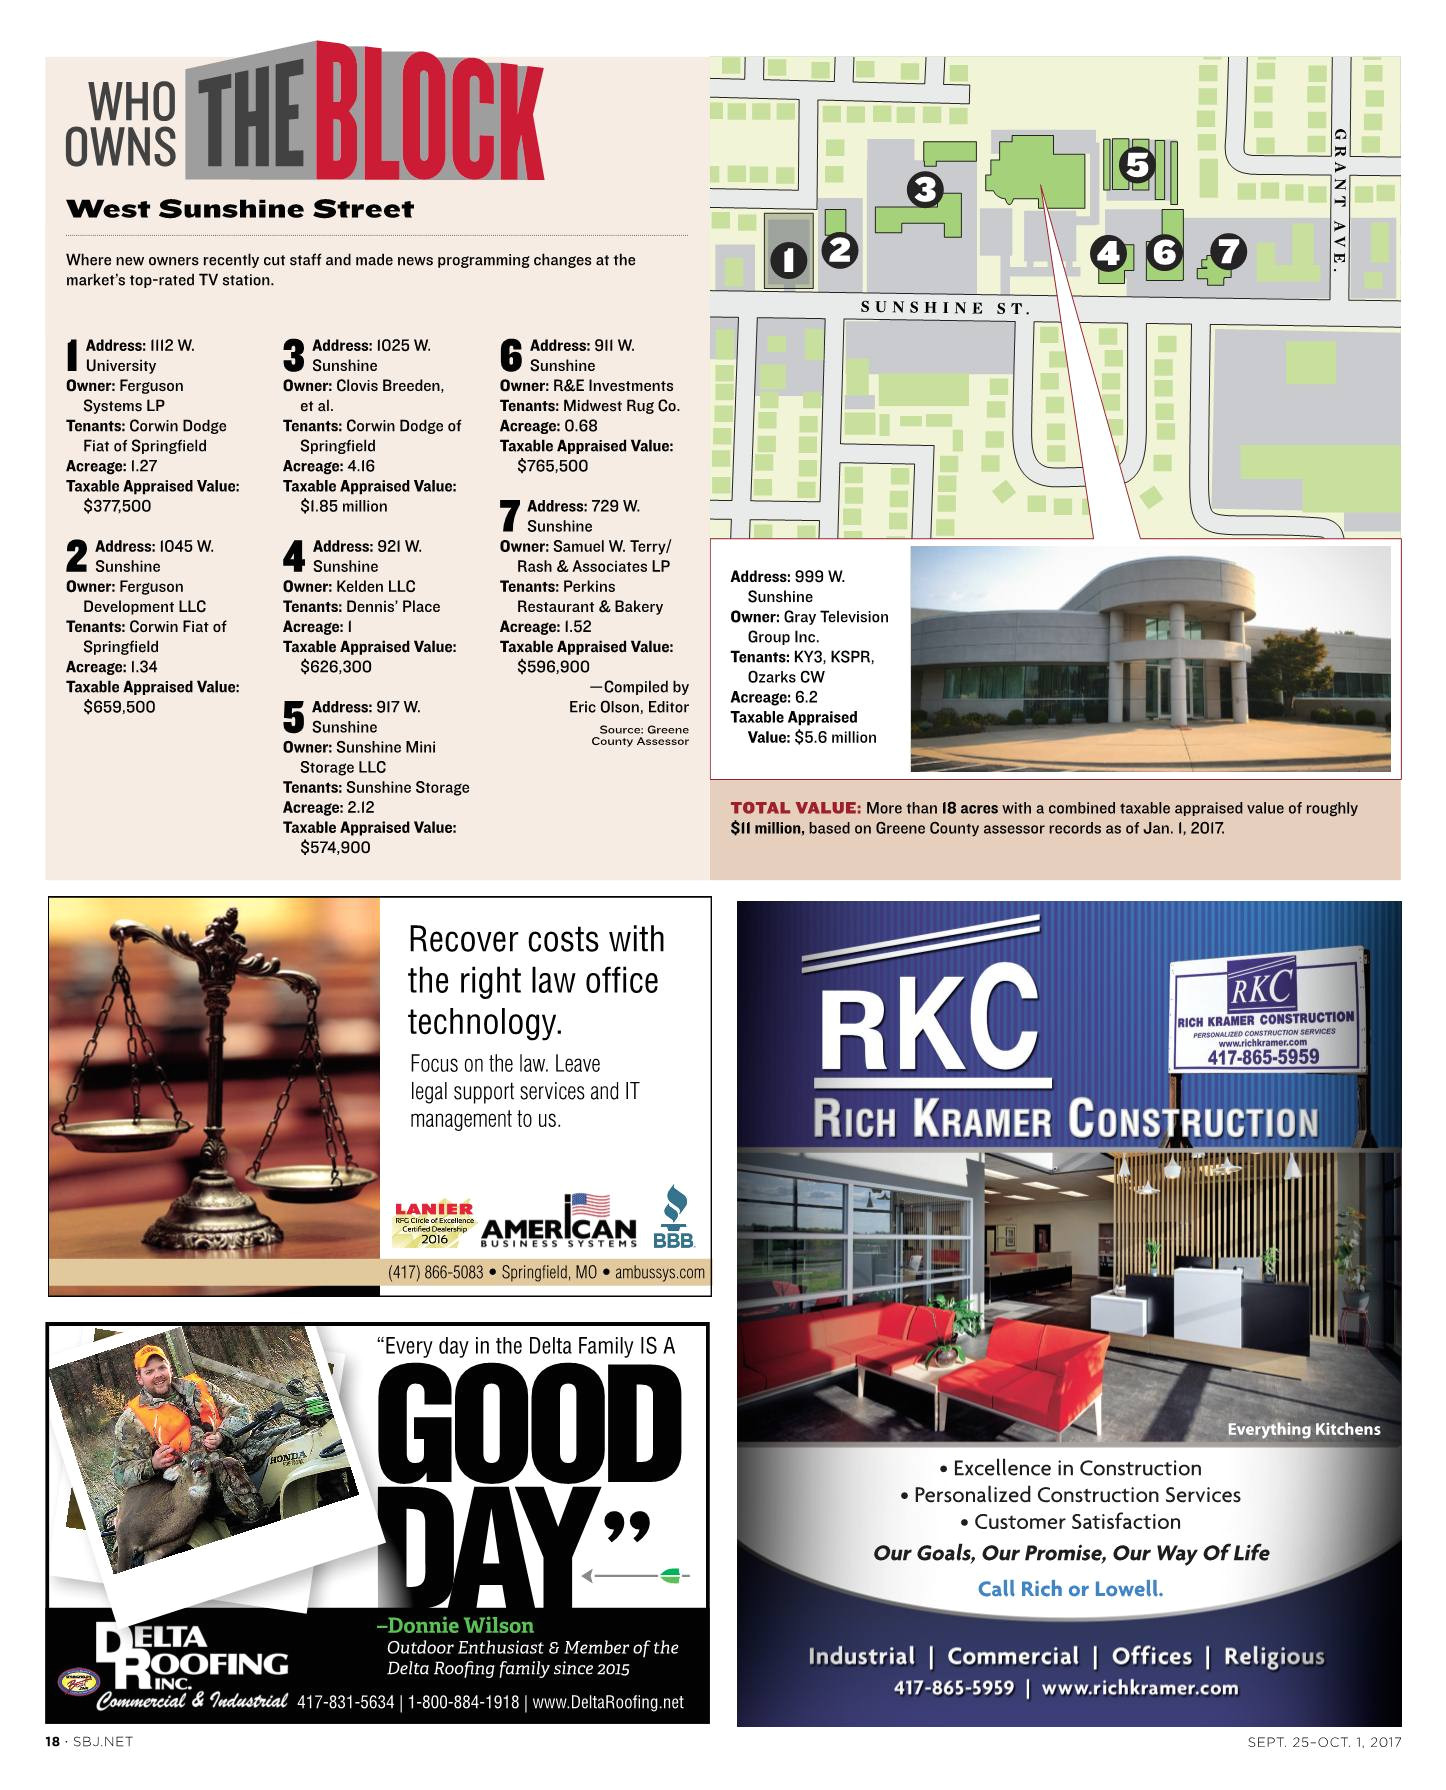 Midwest Rug Co Springfield Mo Newzgroup Com Papers 17053 2017 09 25 Flippingbook Files assets